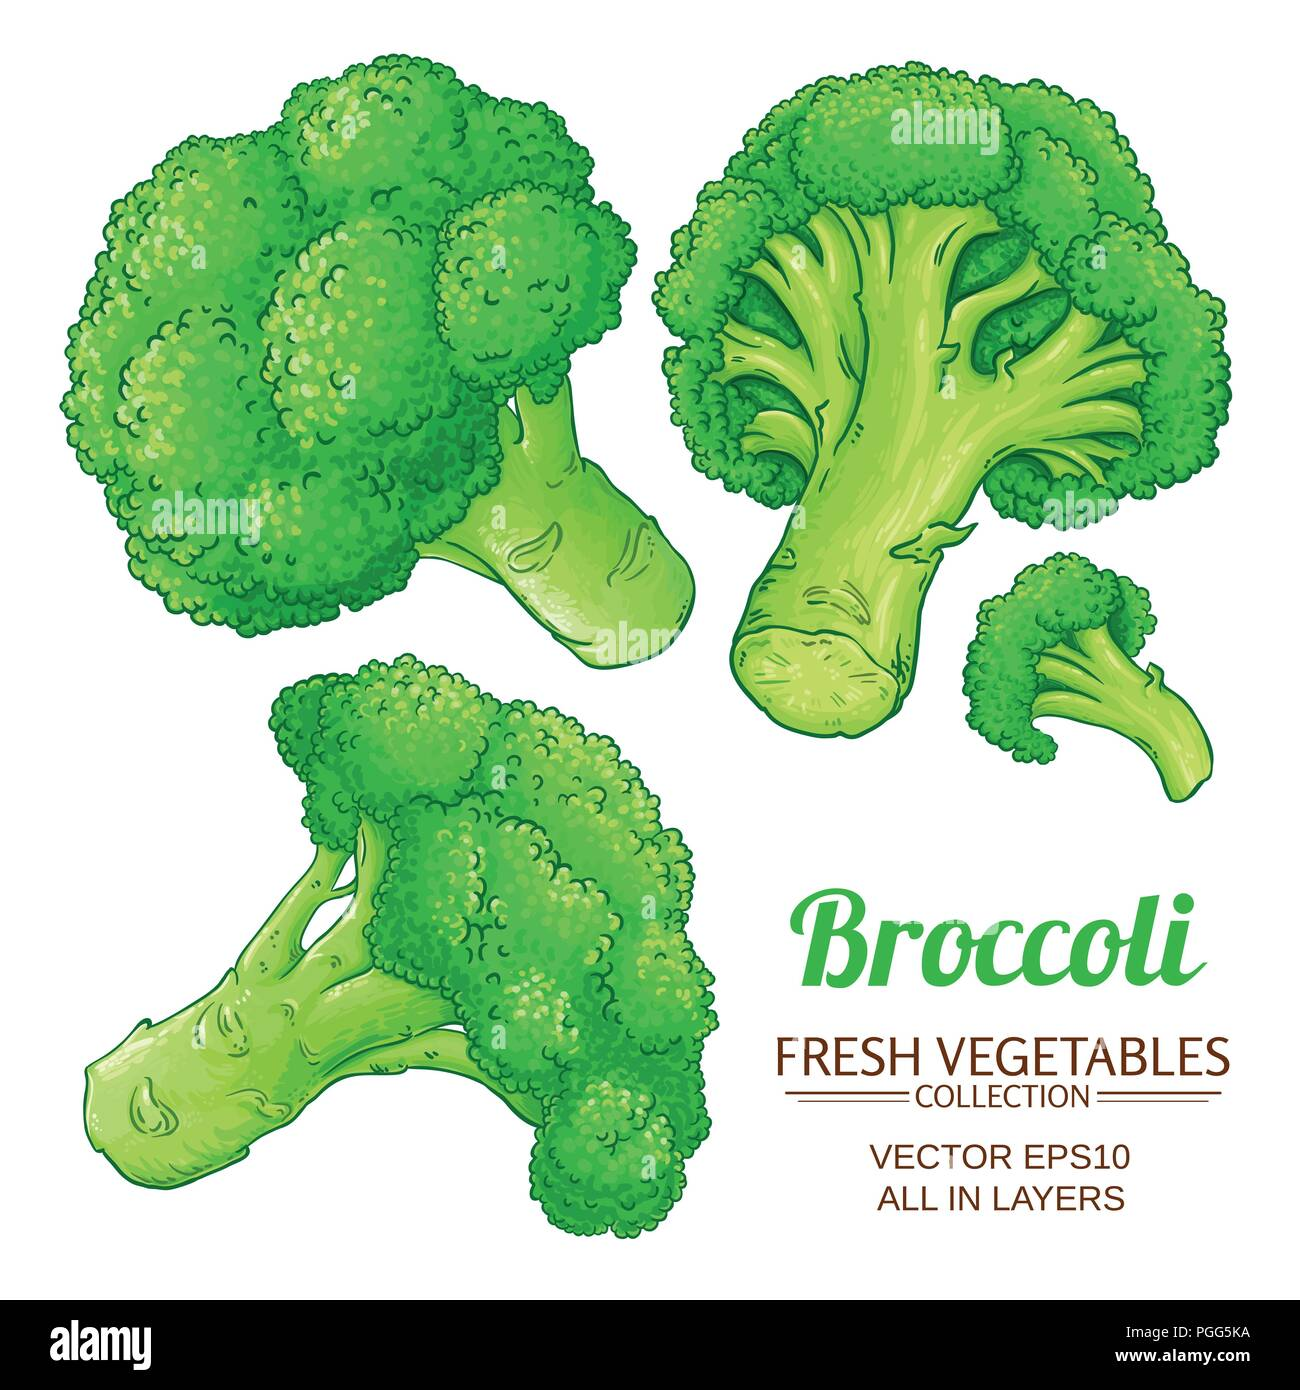 broccoli vector set on white background stock vector image art alamy https www alamy com broccoli vector set on white background image216714606 html